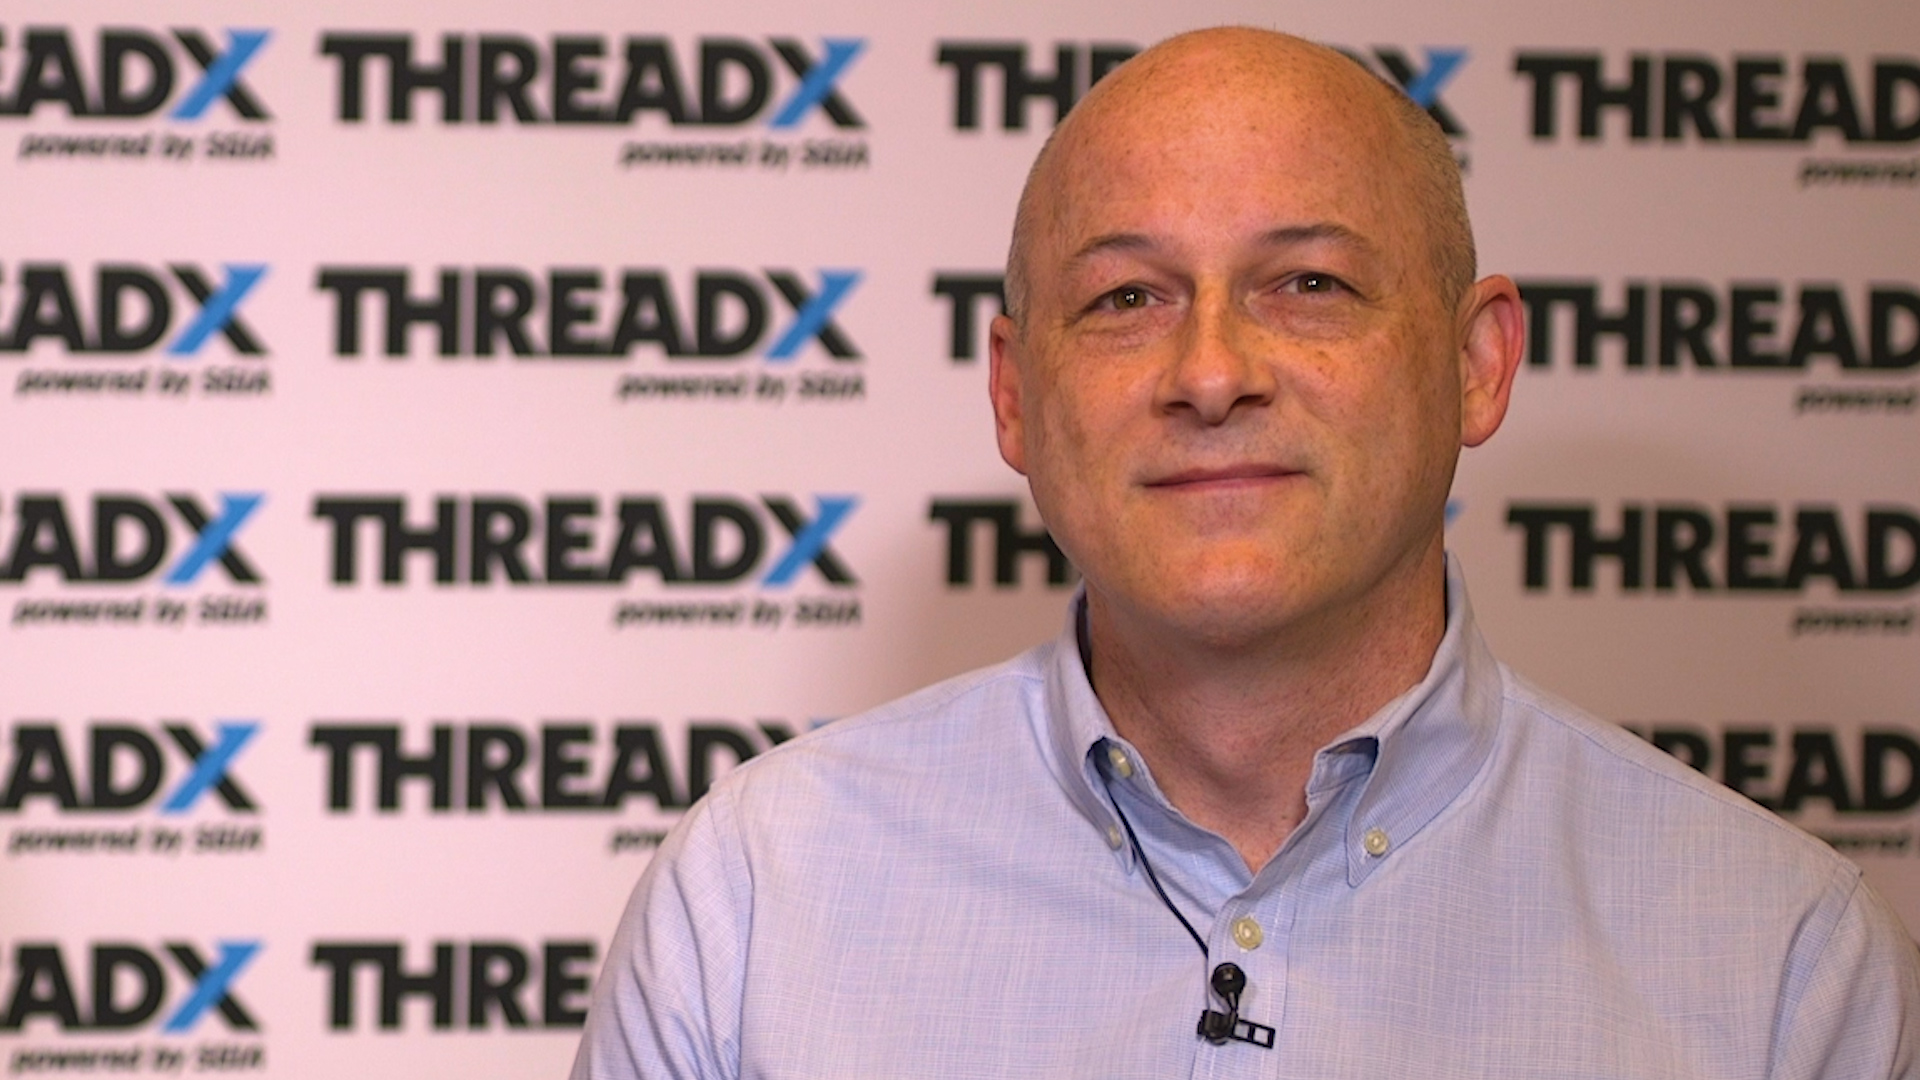 Video preview: ThreadX: A New Event for Garment Decorators